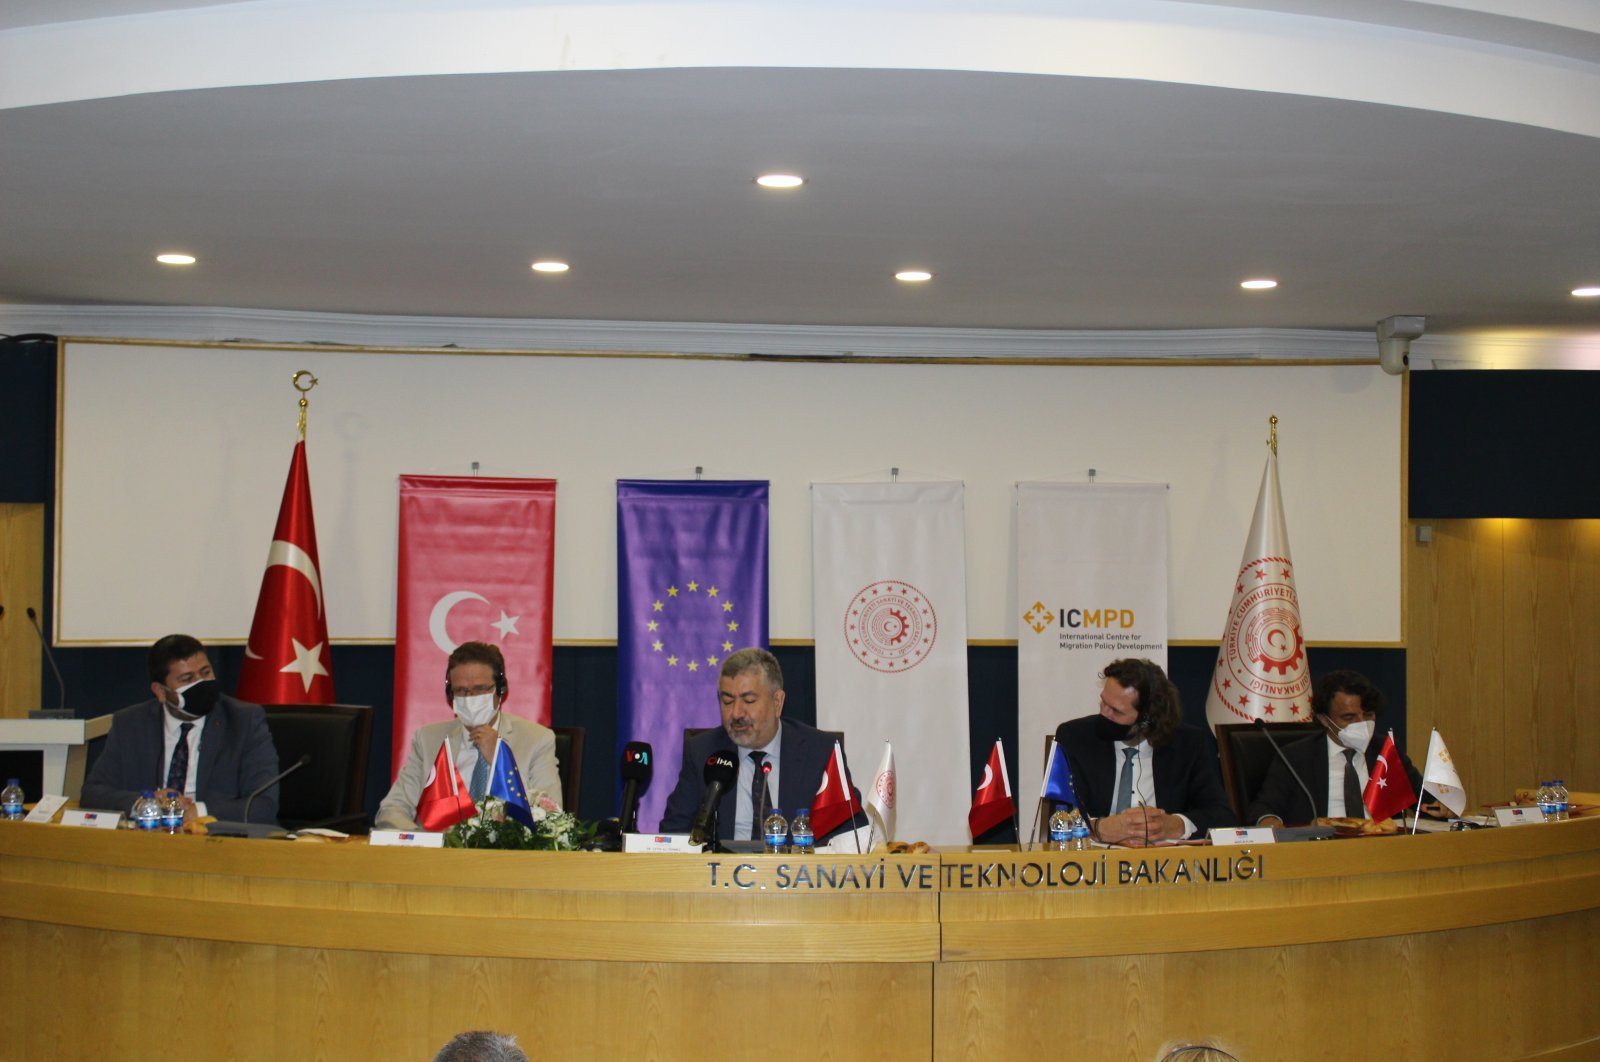 Senior officials from the ICMPD, the EU and Turkey's Ministry of Industry and Technology are seen in this photo during a press conference in Ankara, Turkey, July 2, 2021 (Photo Courtesy of the ICMPD)